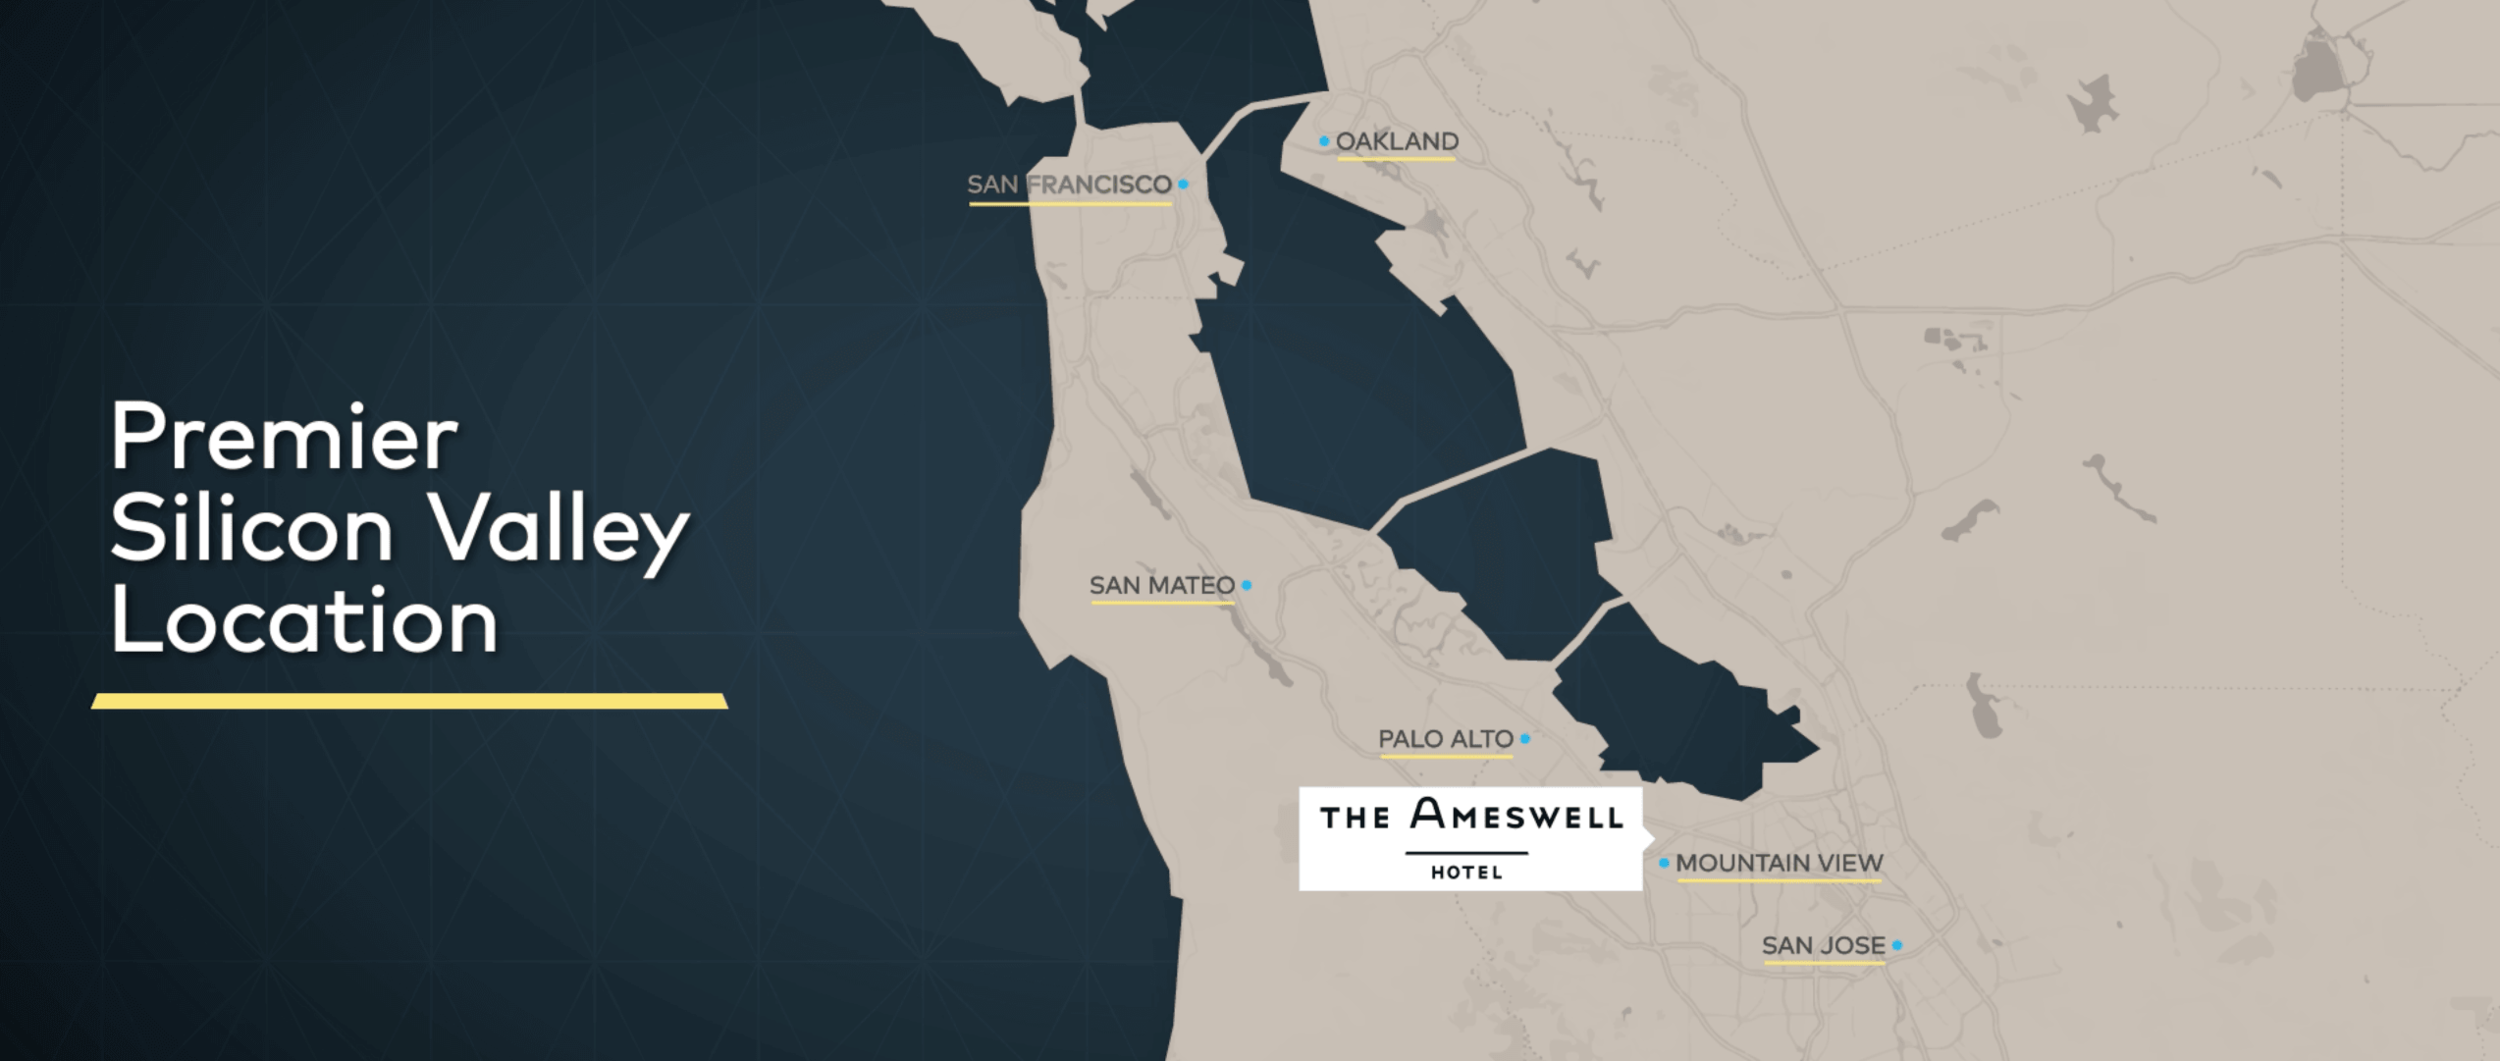 Ameswell_Location_Map.png